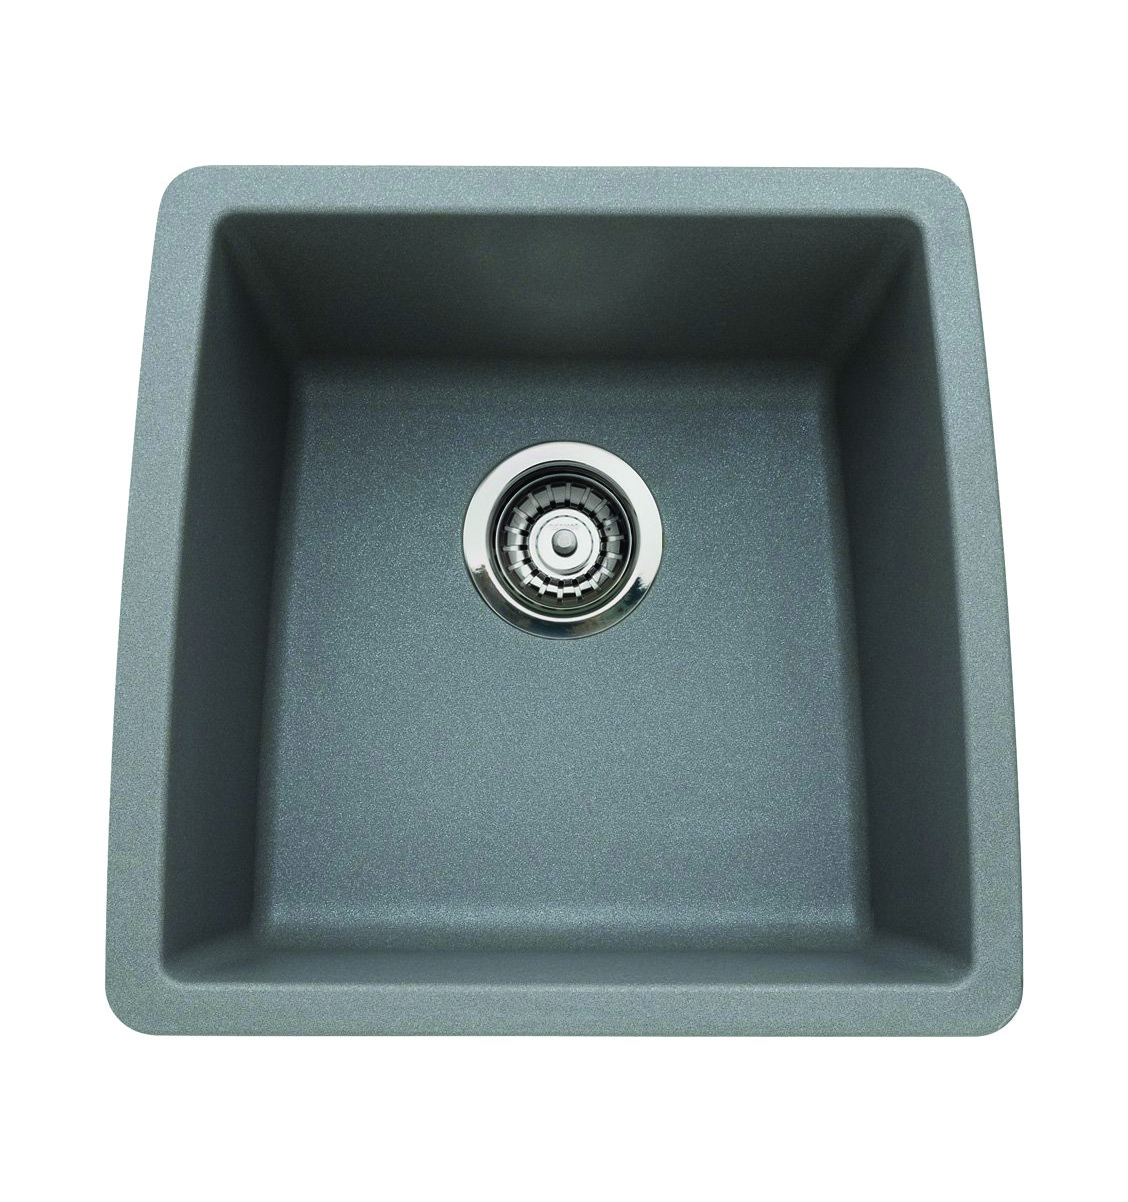 Silgranit Sink : Blanco 440082 Performa Silgranit II Single Bowl Sink, Metallic Gray ...